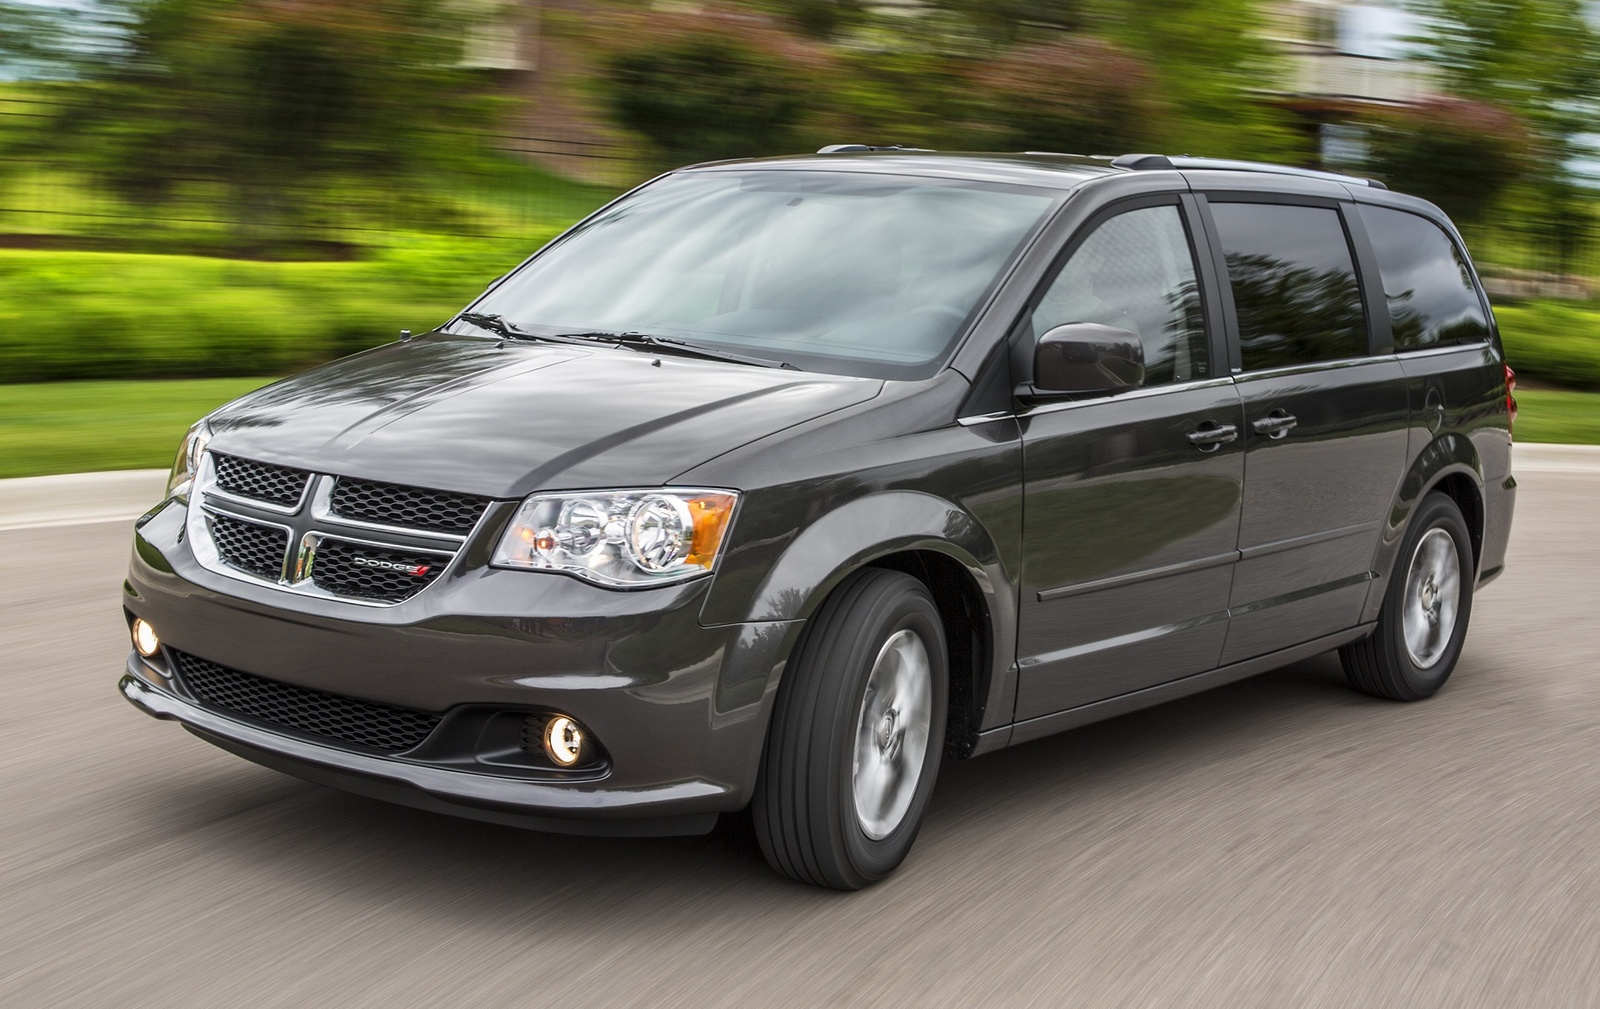 2015 dodge grand caravan review cargurus. Black Bedroom Furniture Sets. Home Design Ideas